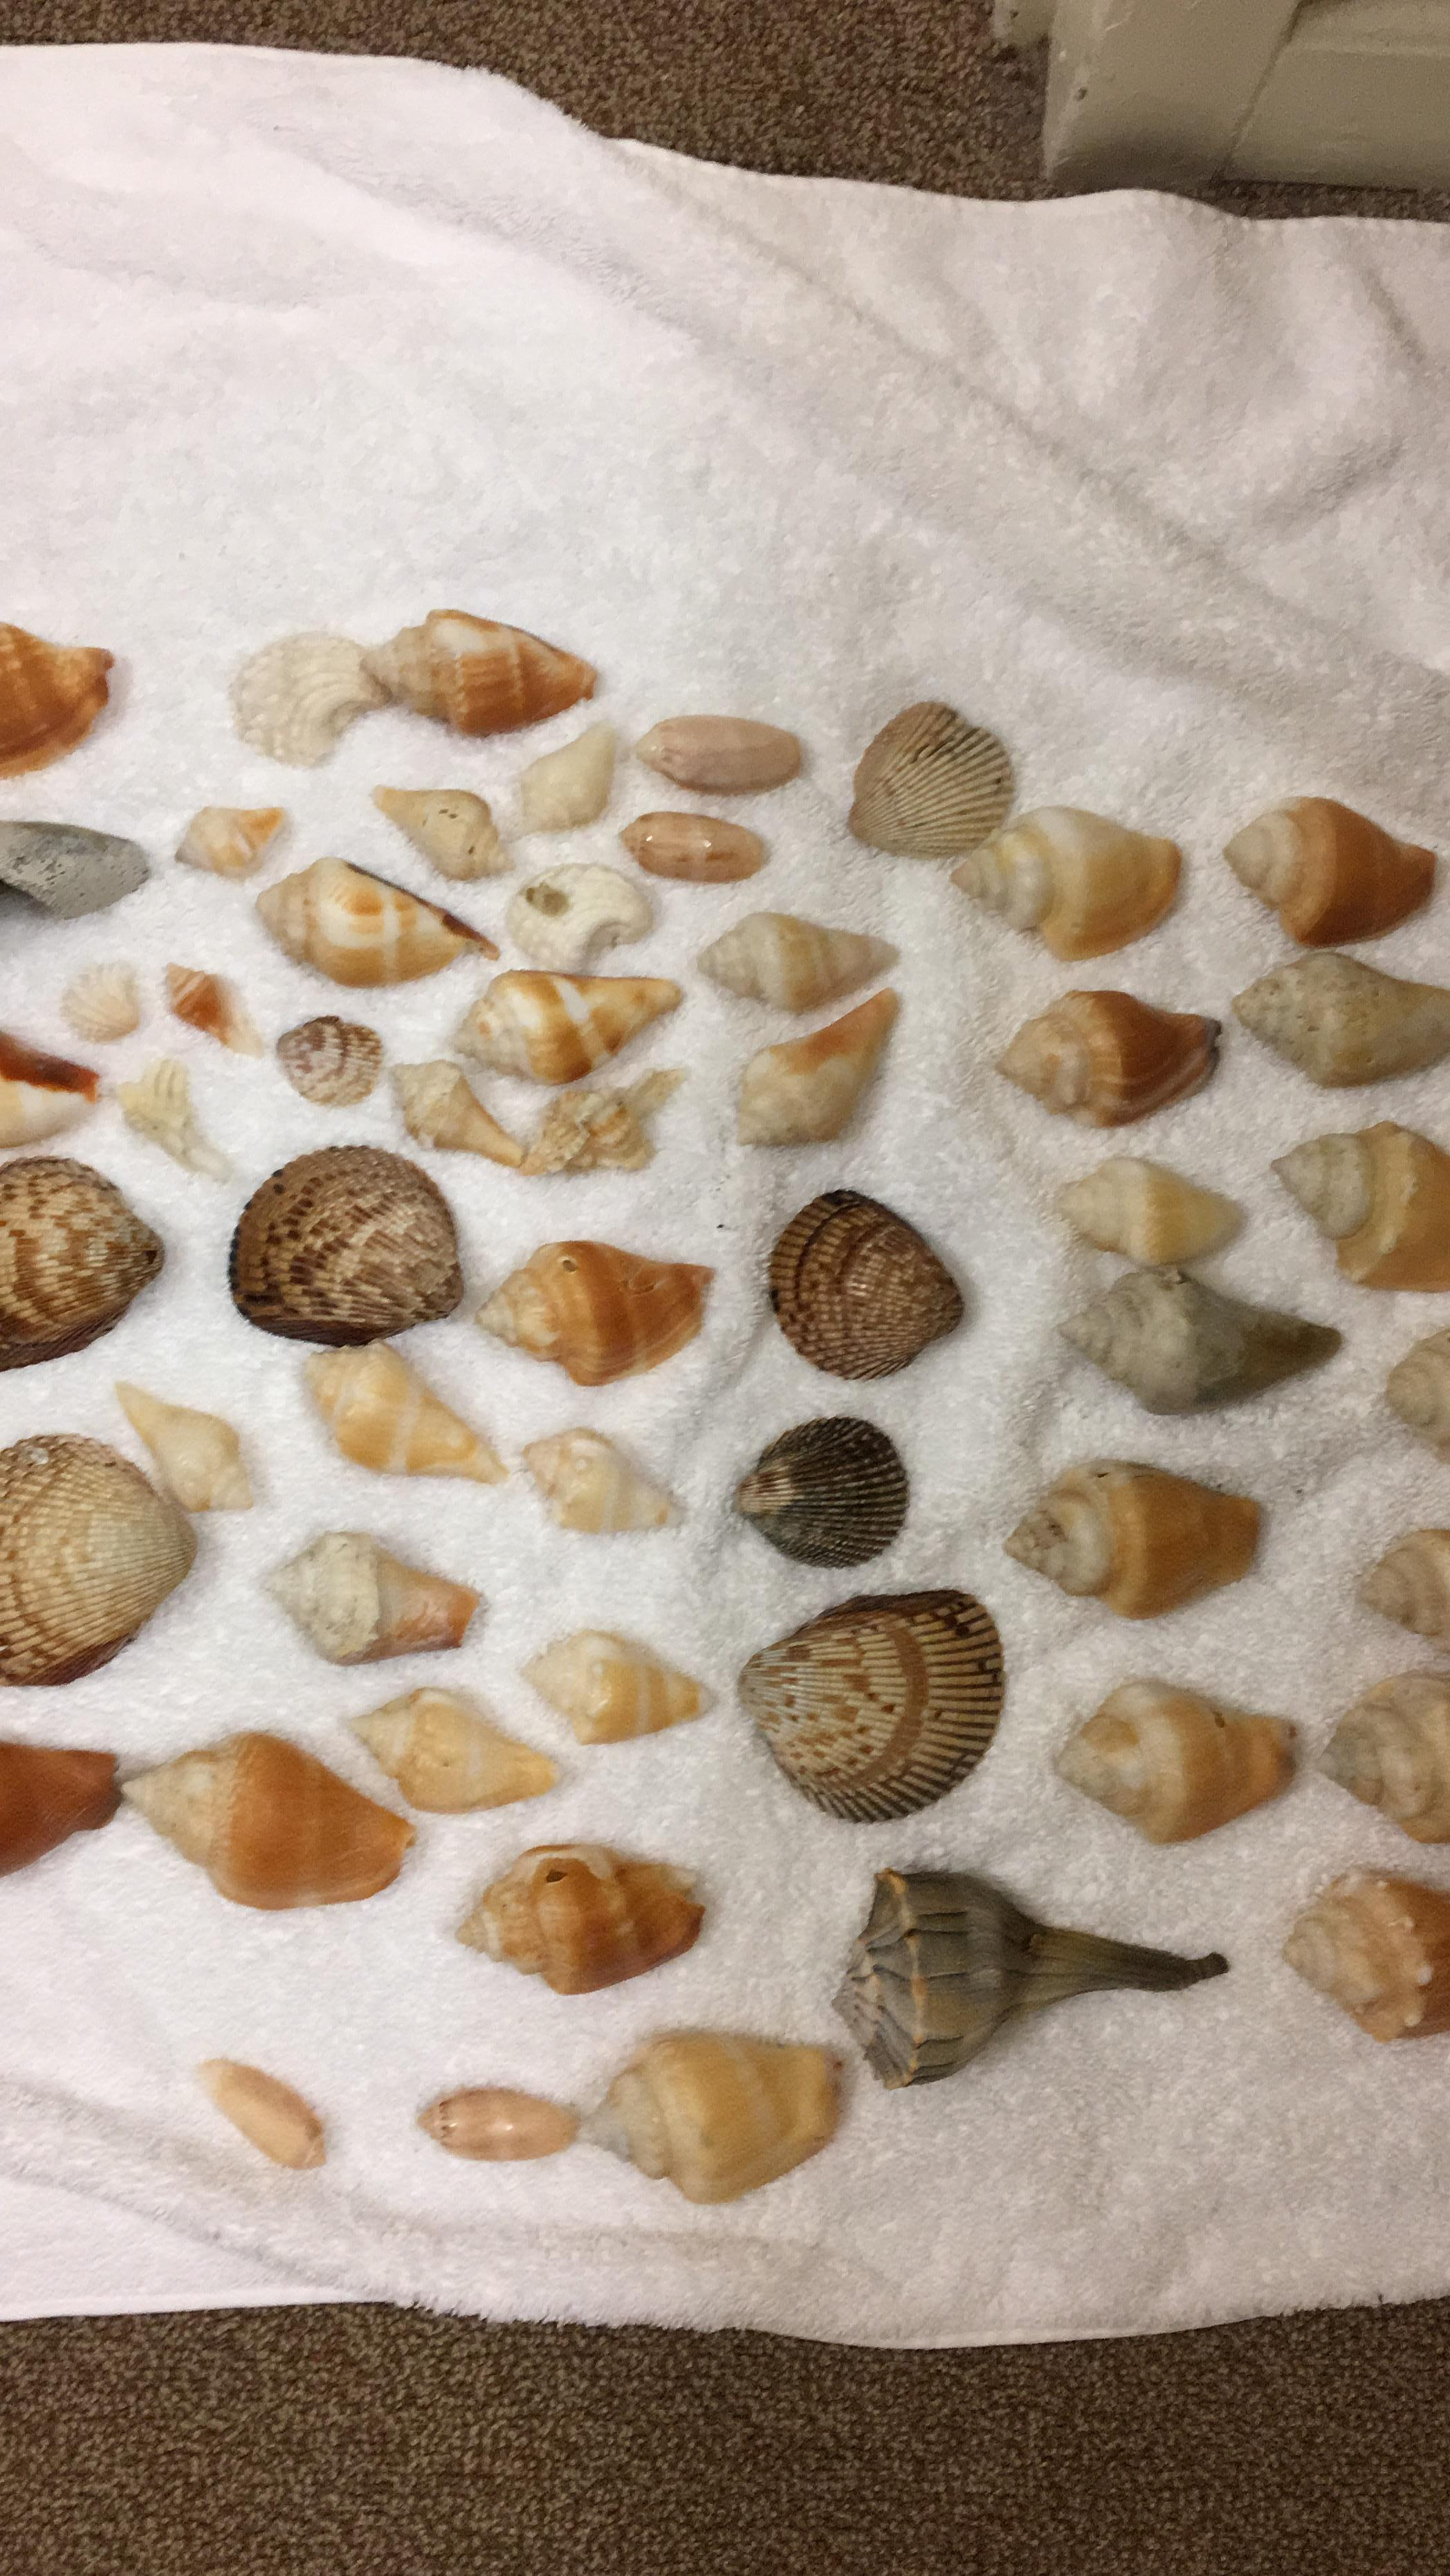 Shells we collected on an early walk